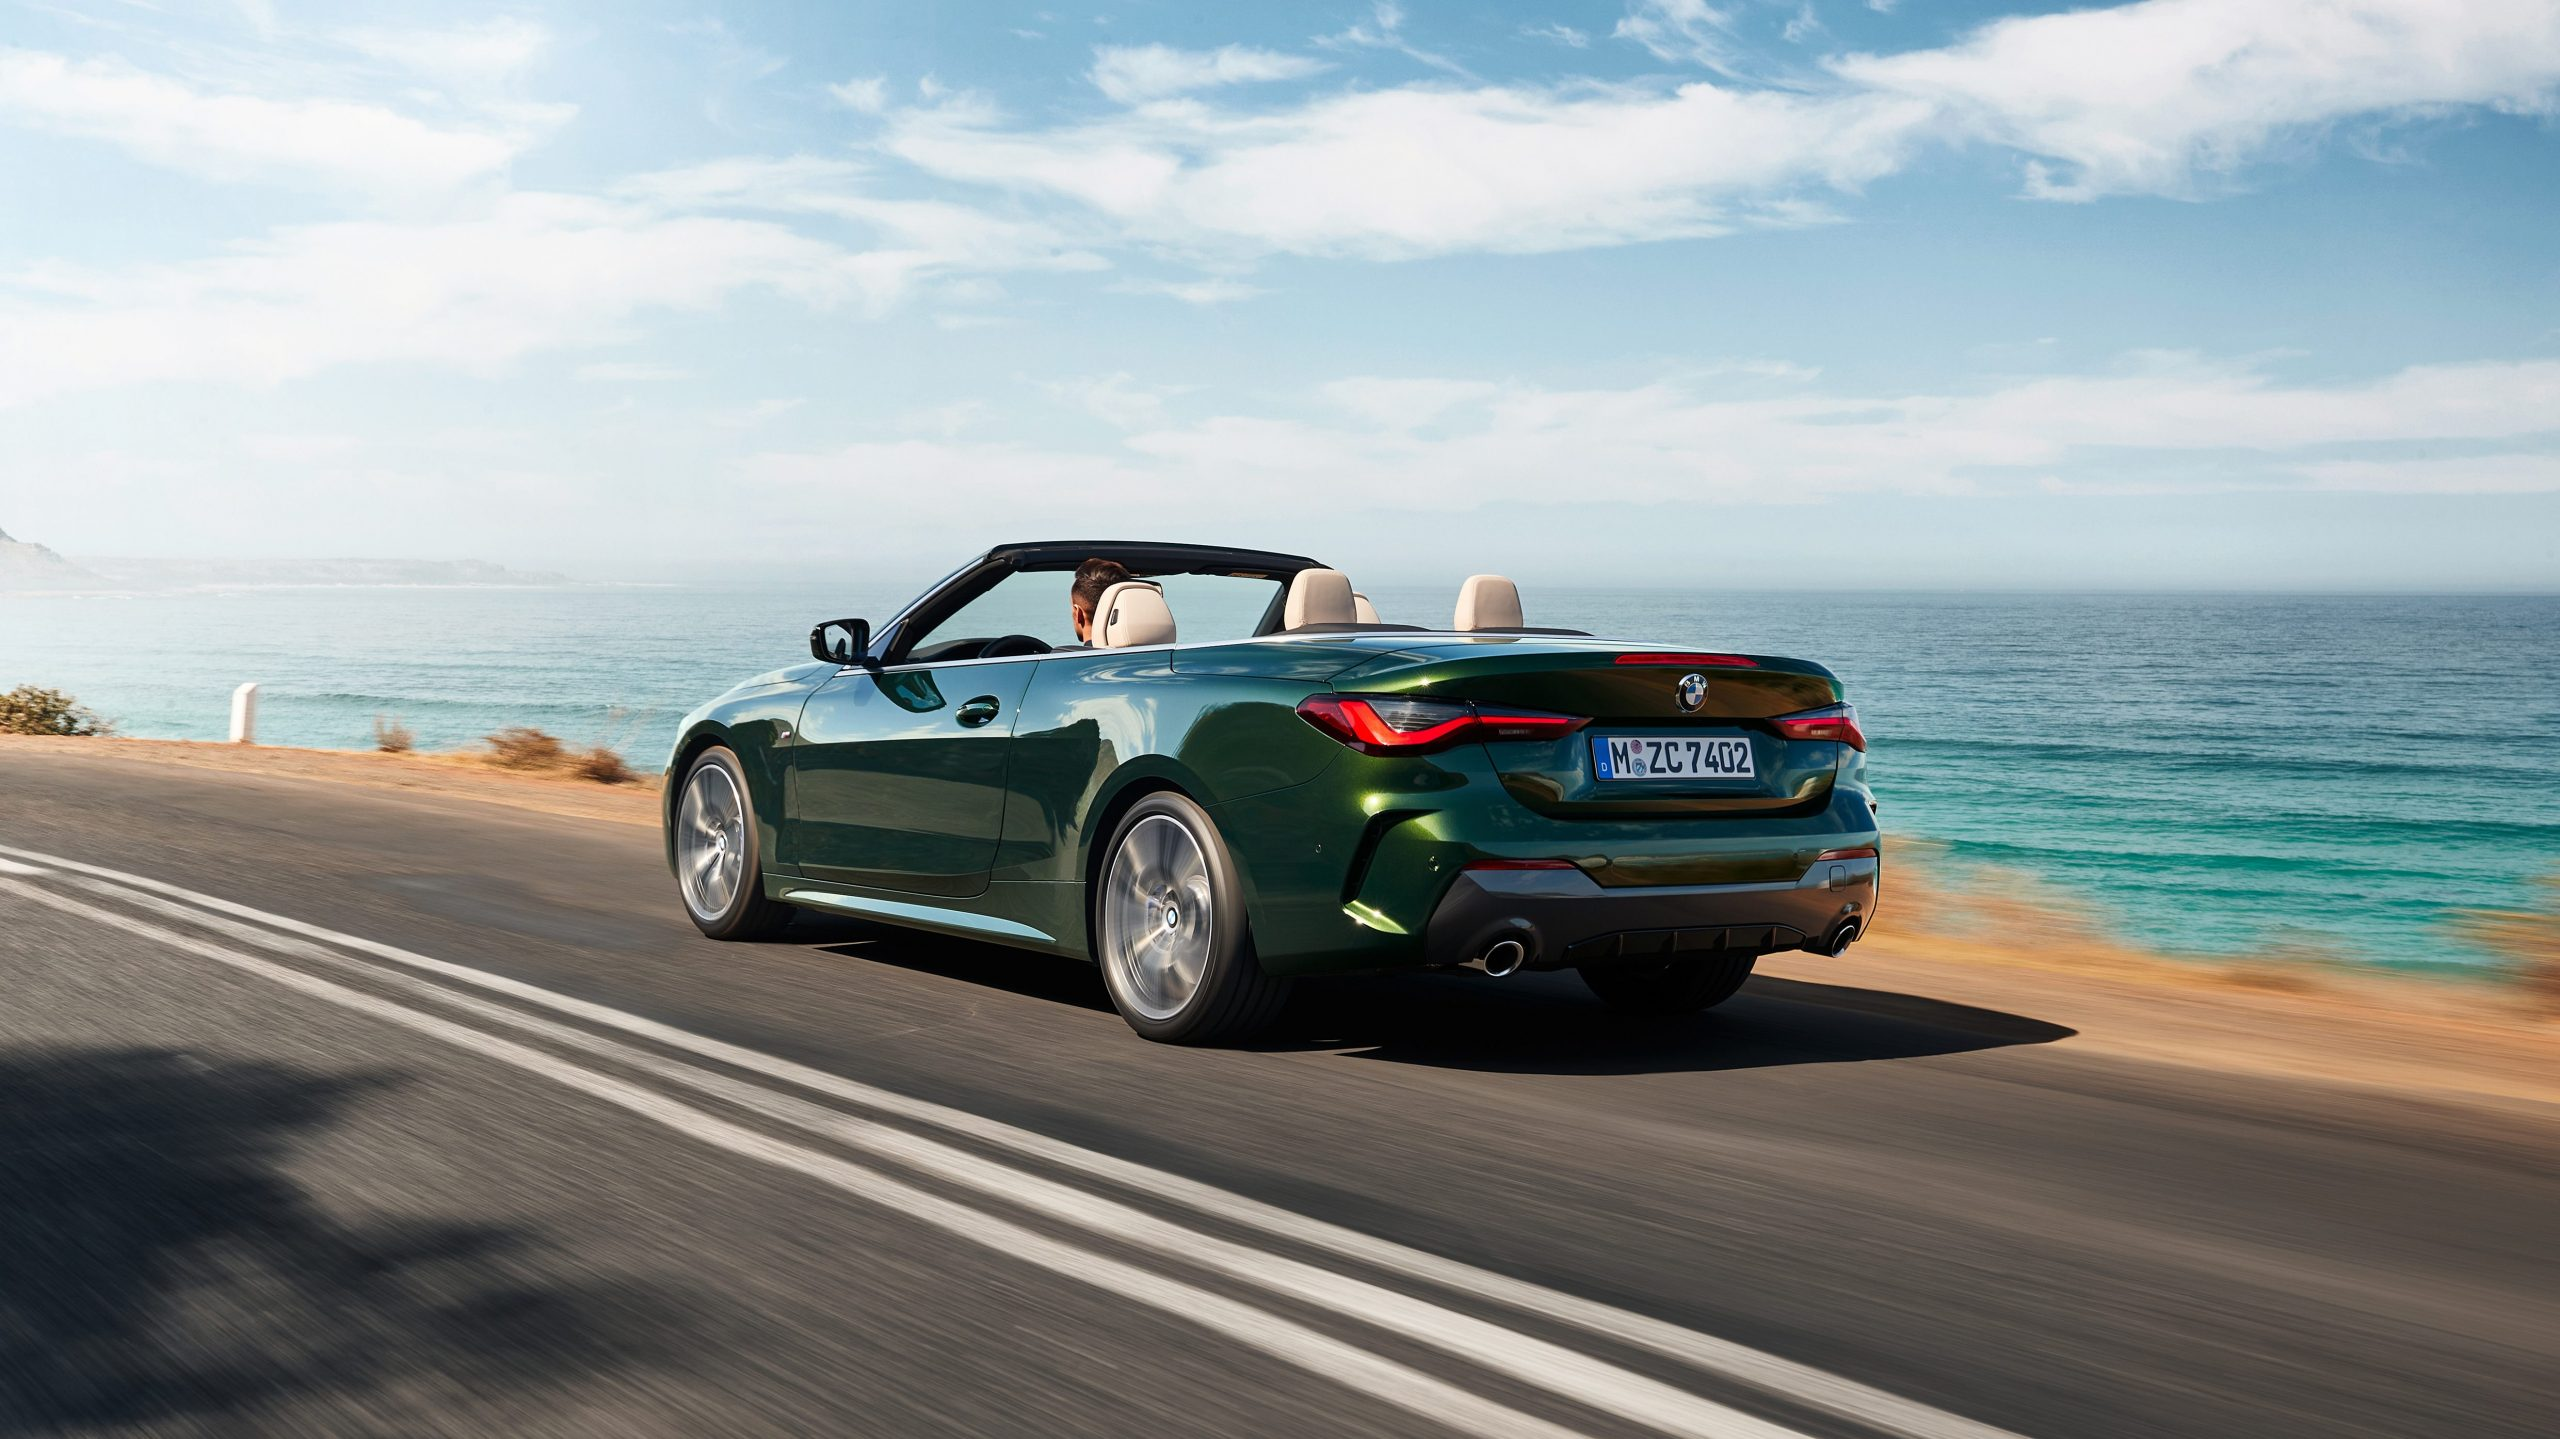 bmw 4 series convertible driving by the ocean